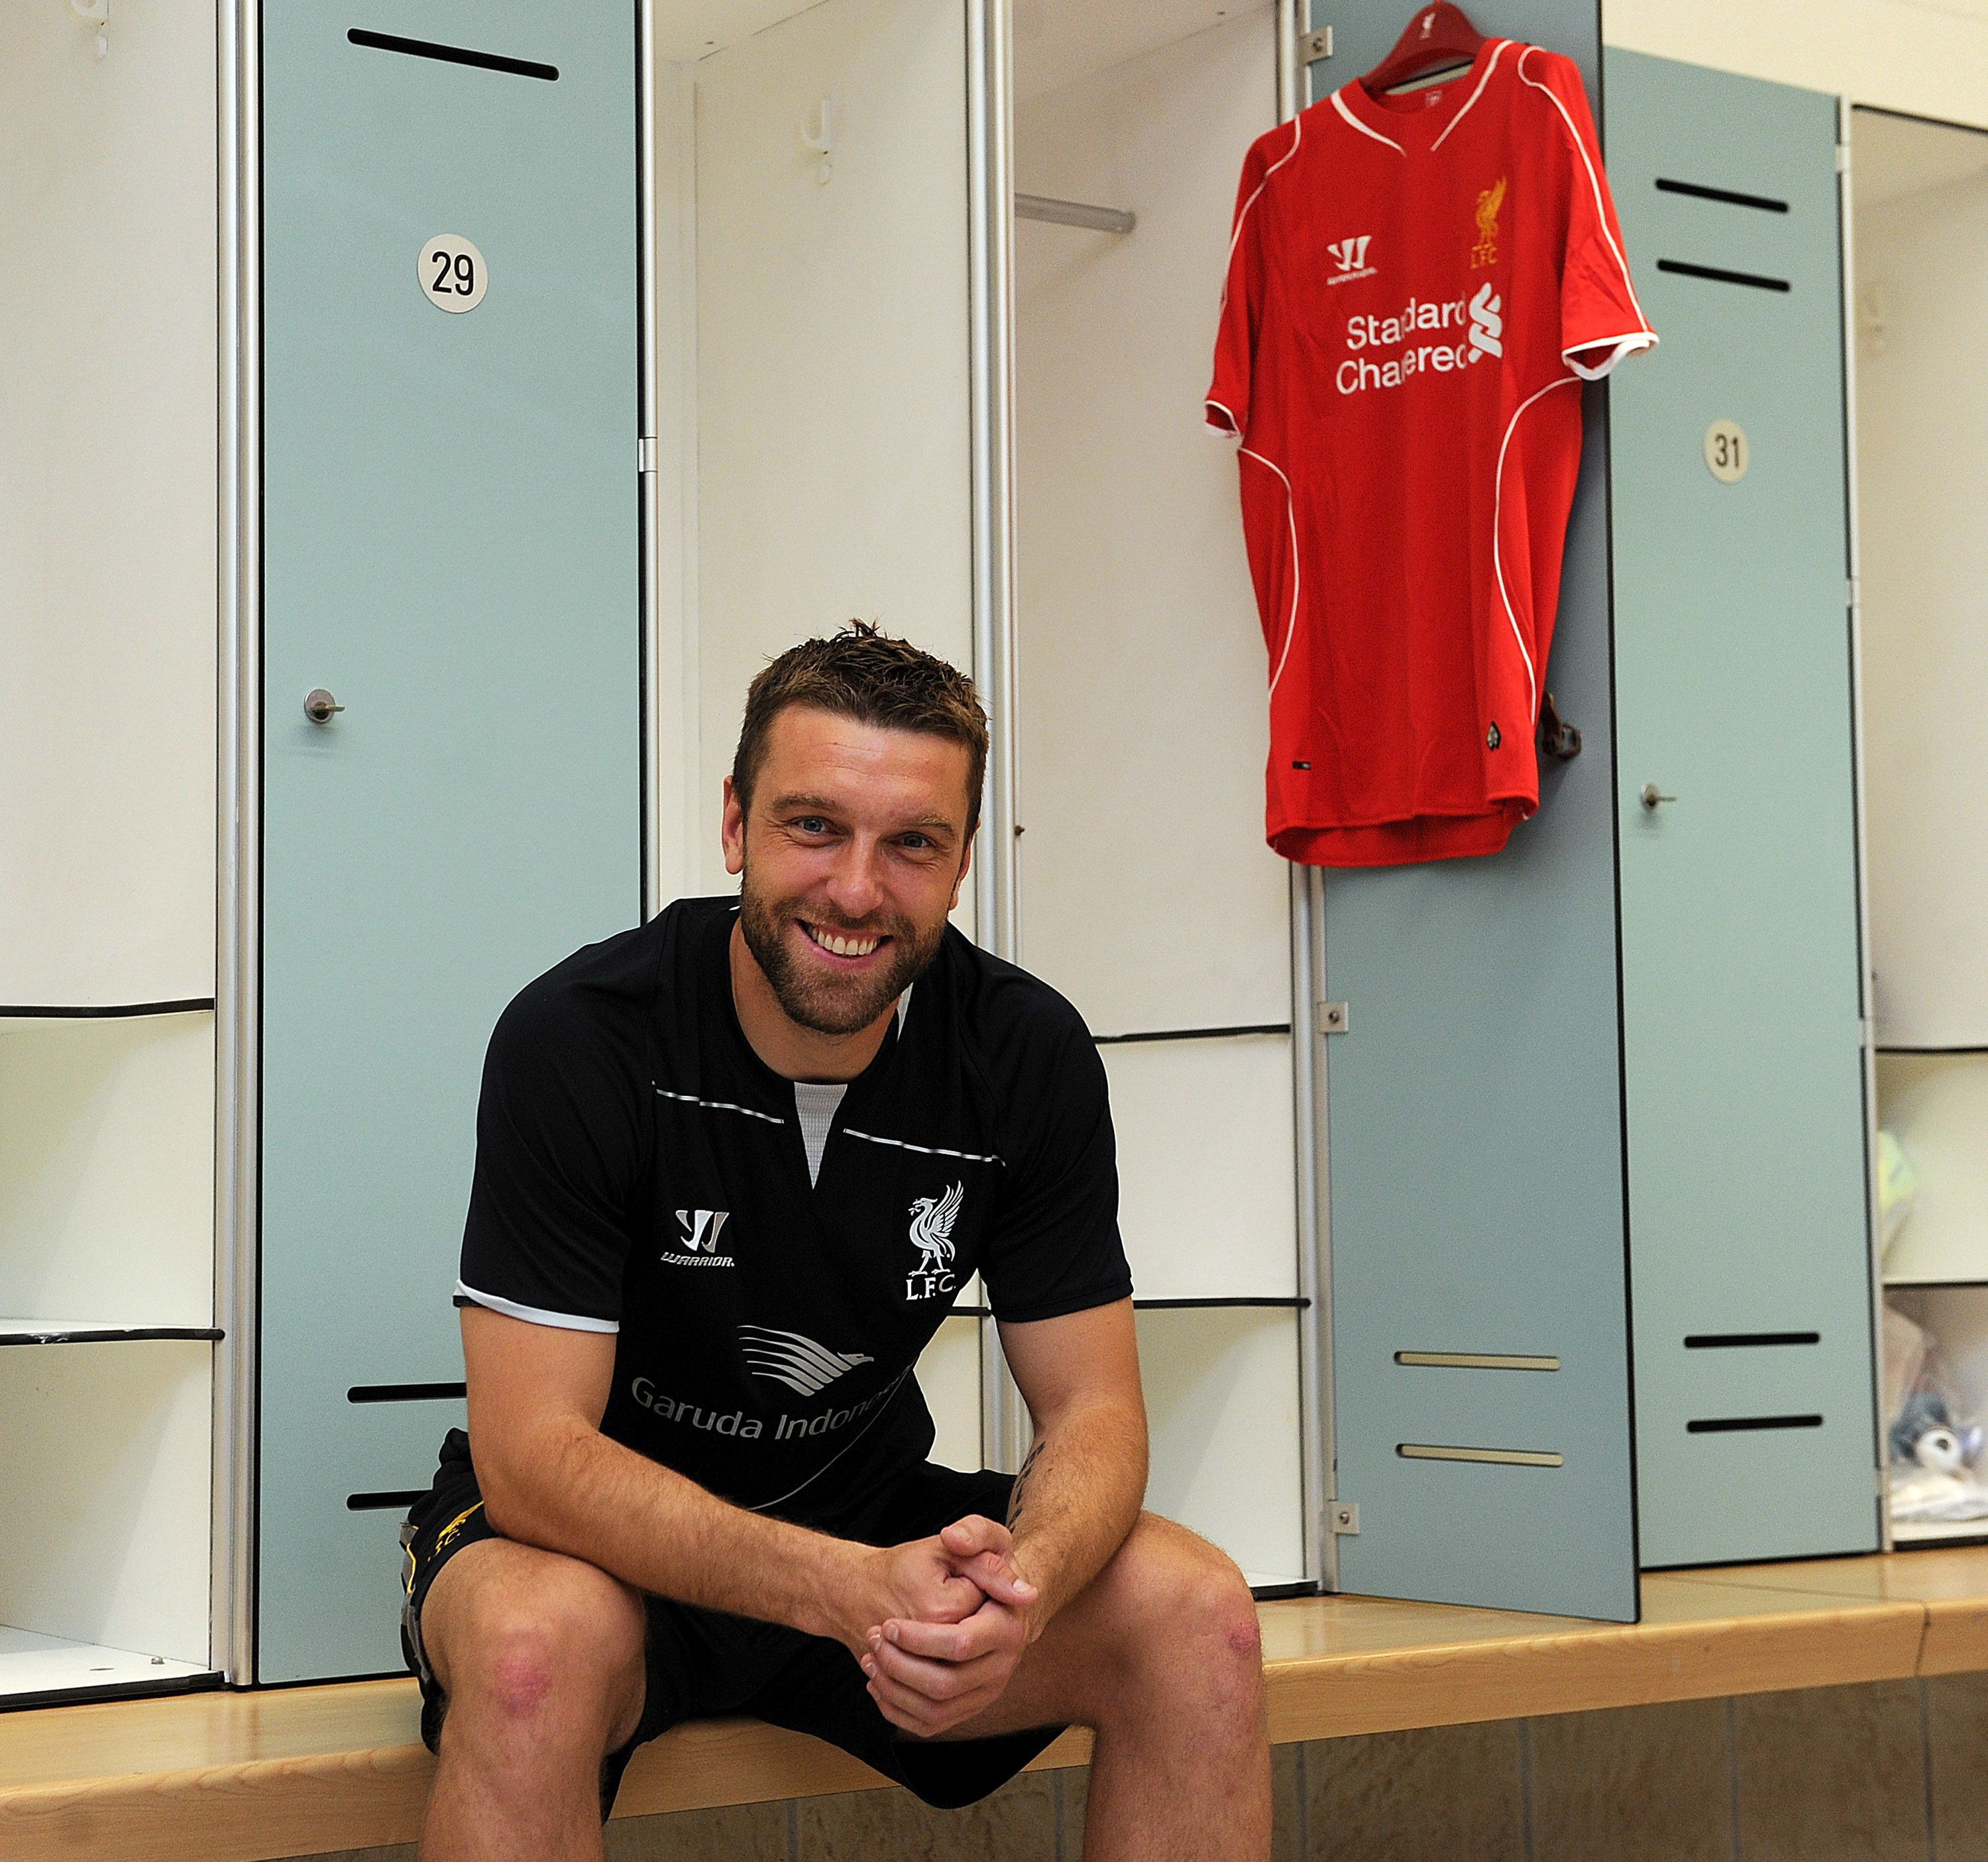 The 32-year-old striker signs for the Reds from Southampton